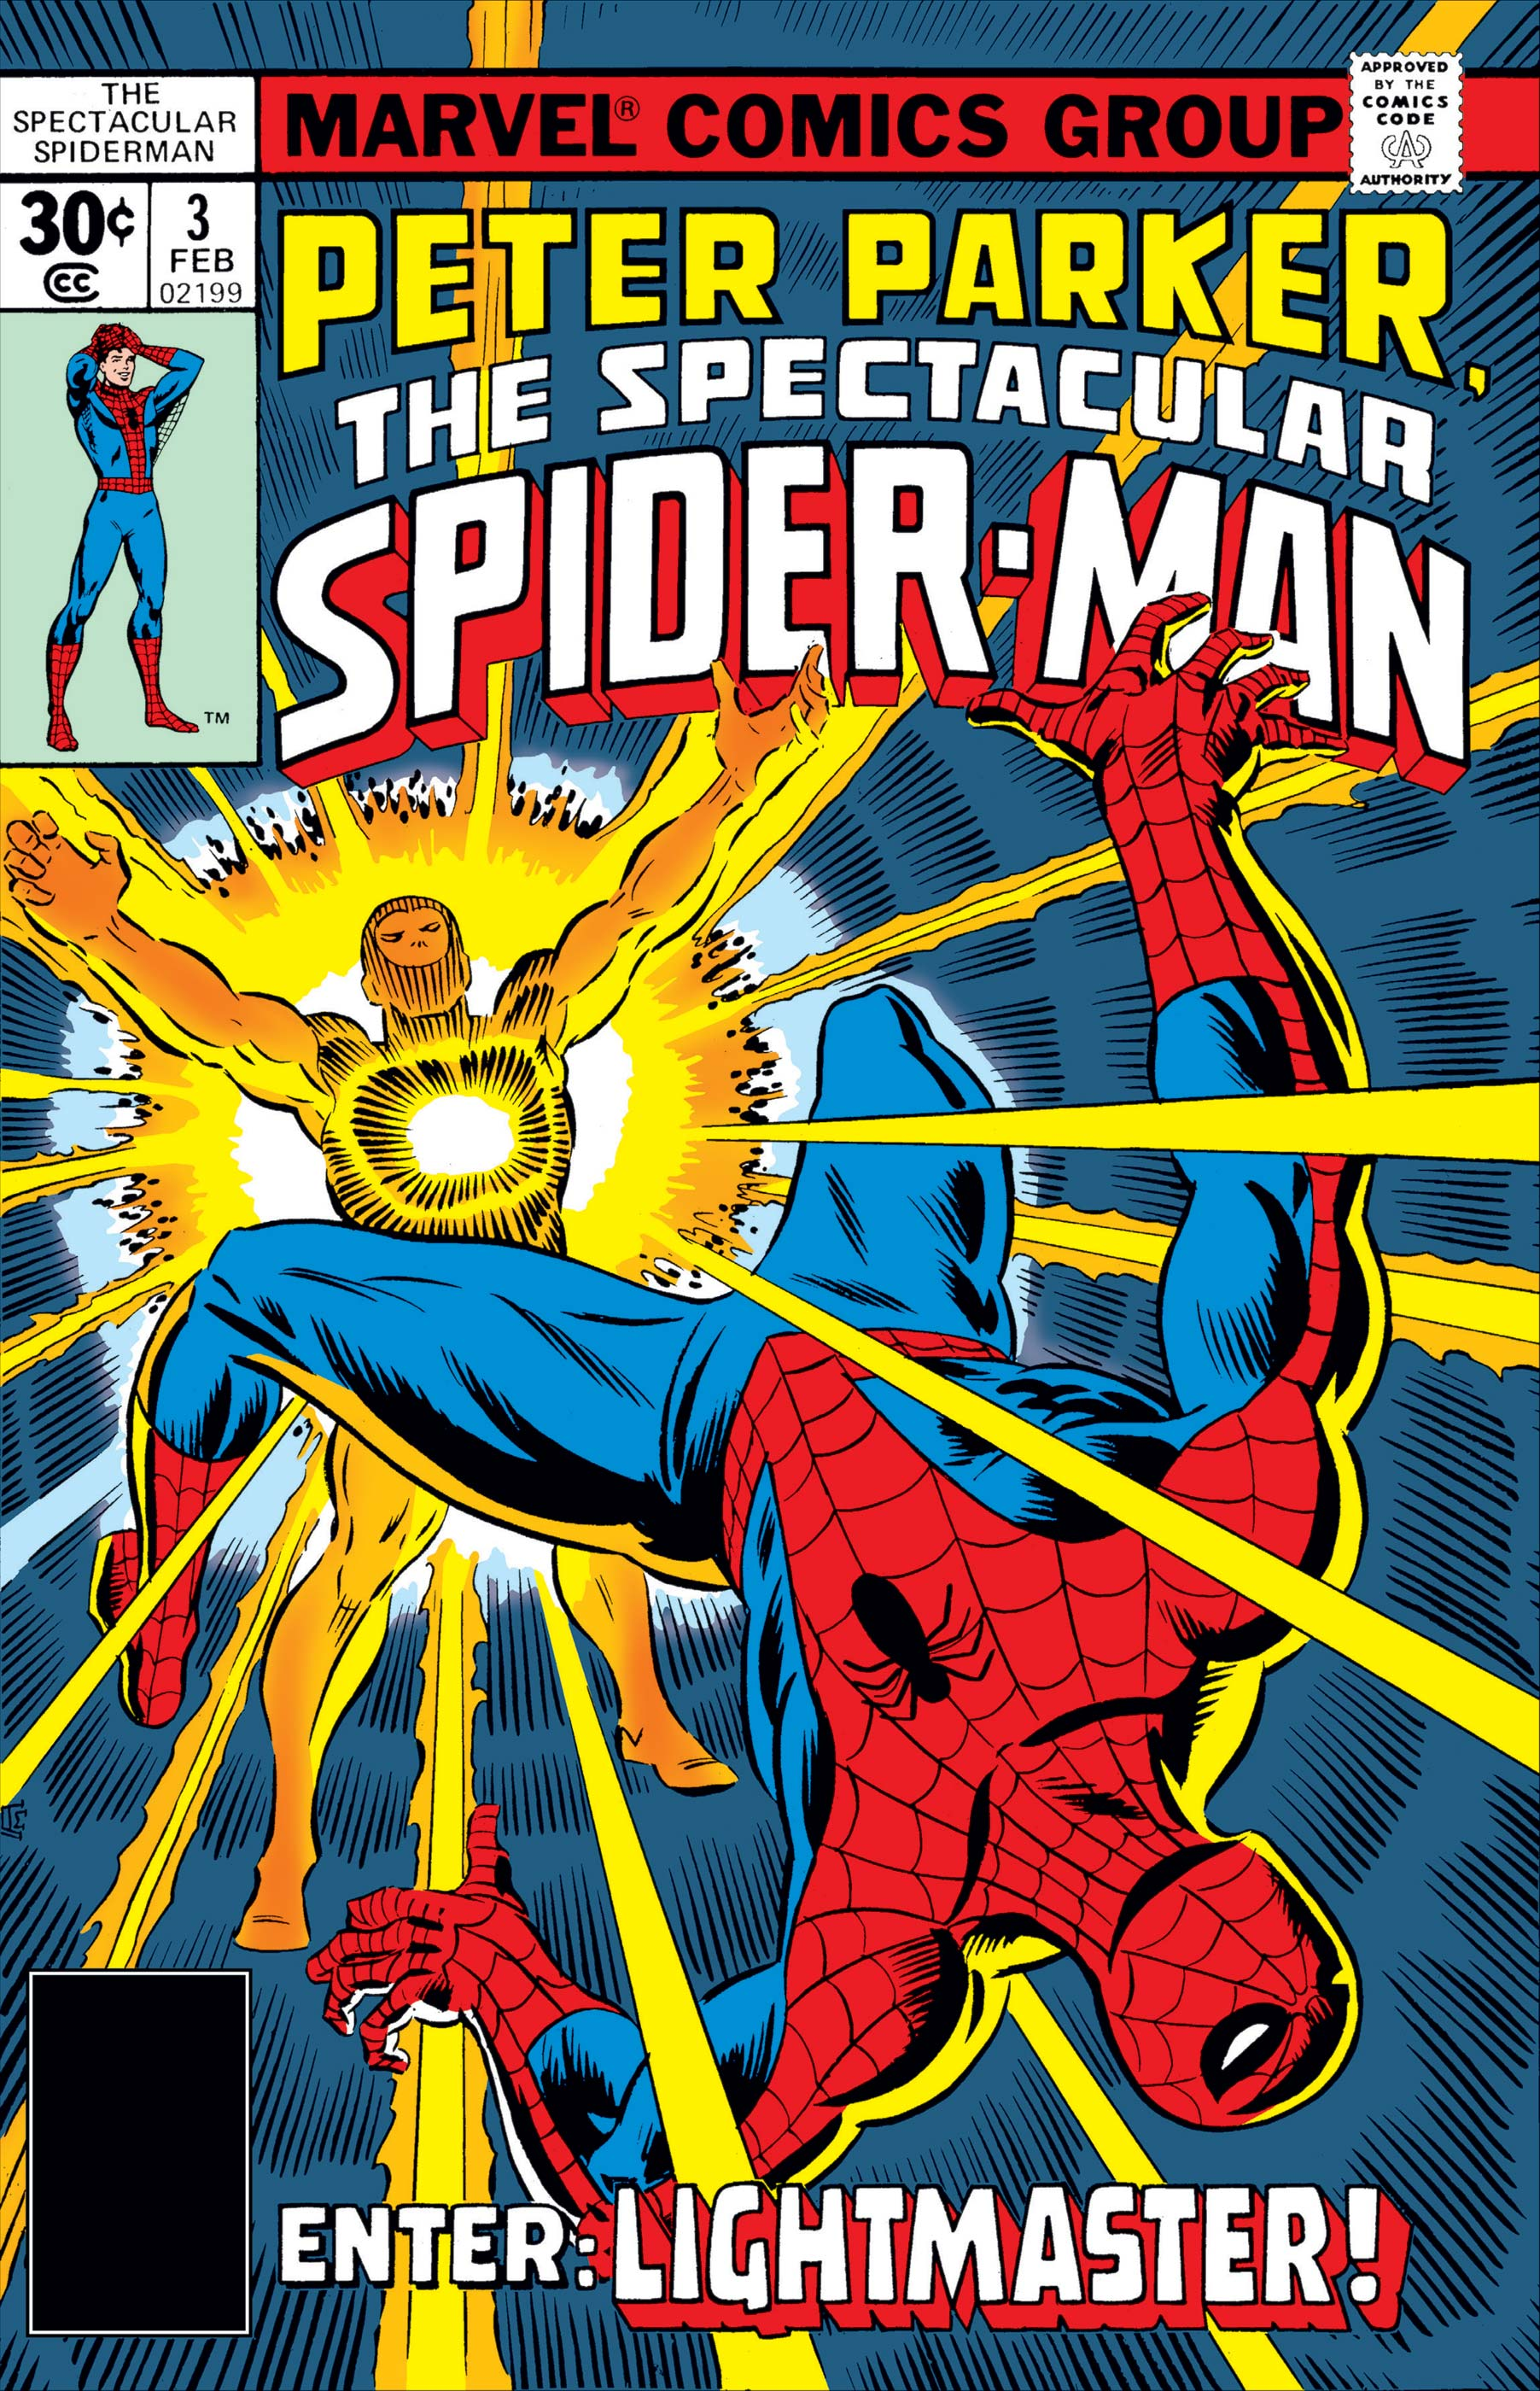 Peter Parker, the Spectacular Spider-Man (1976) #3